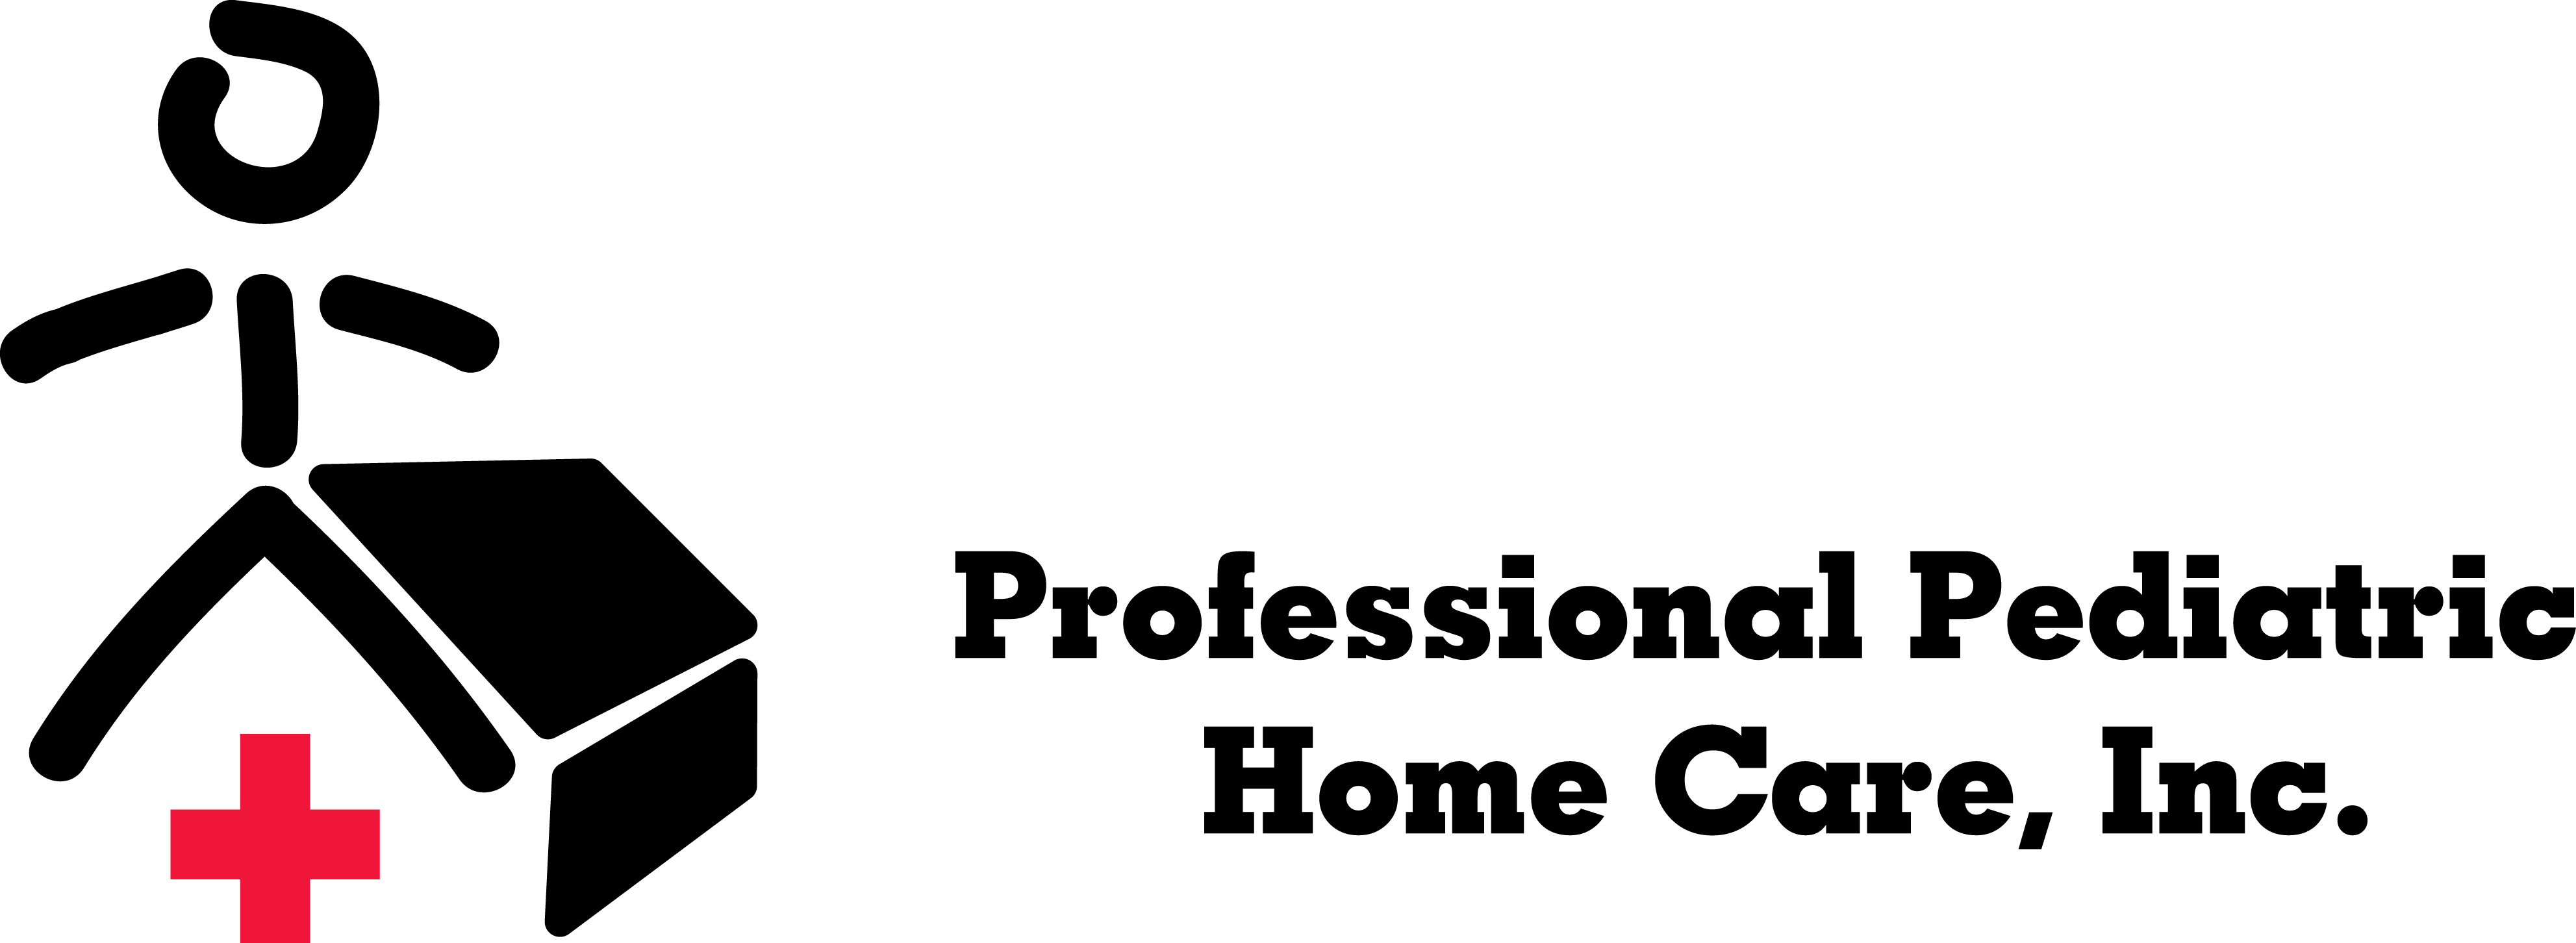 Professional Pediatric Home Care Horizontal 081314